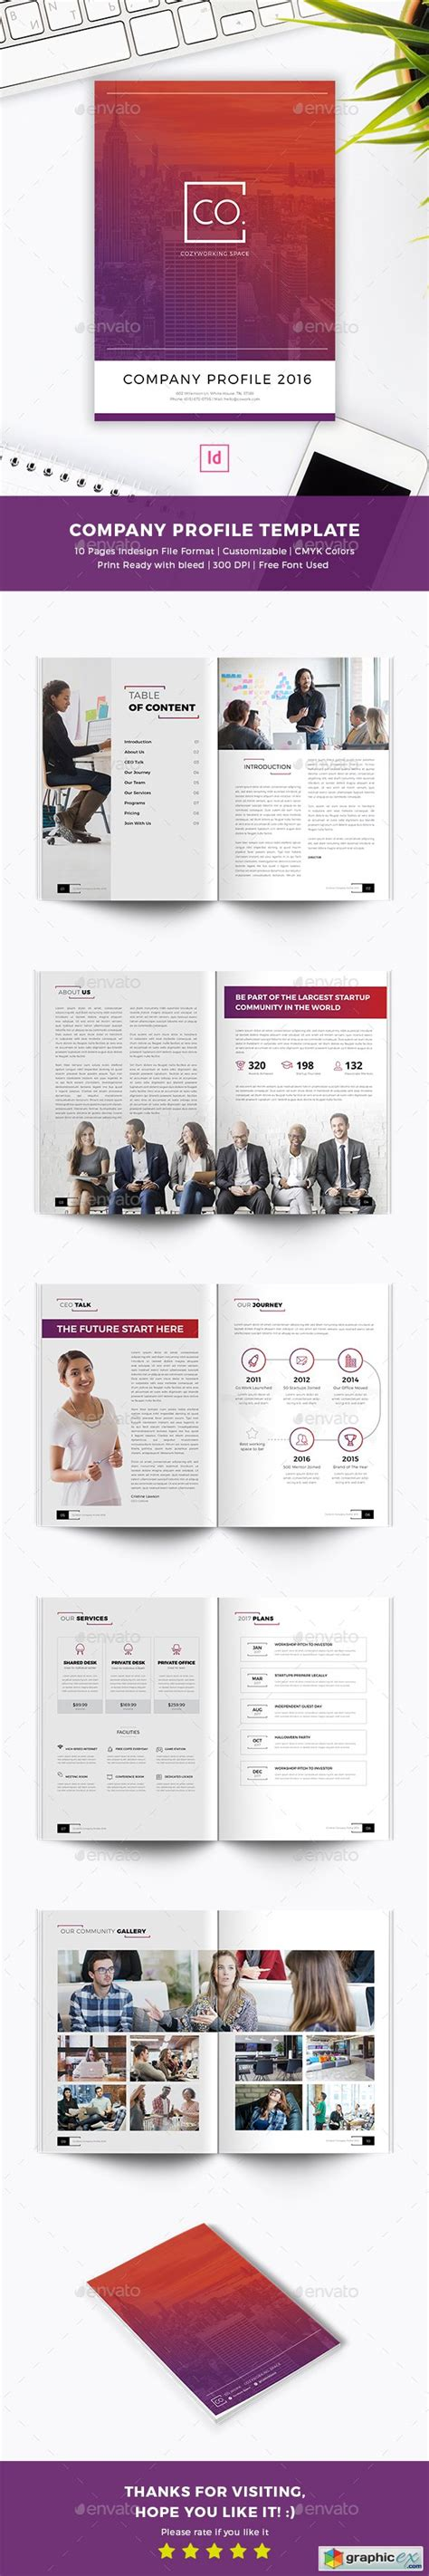 cowork company profile indesign template 187 free download